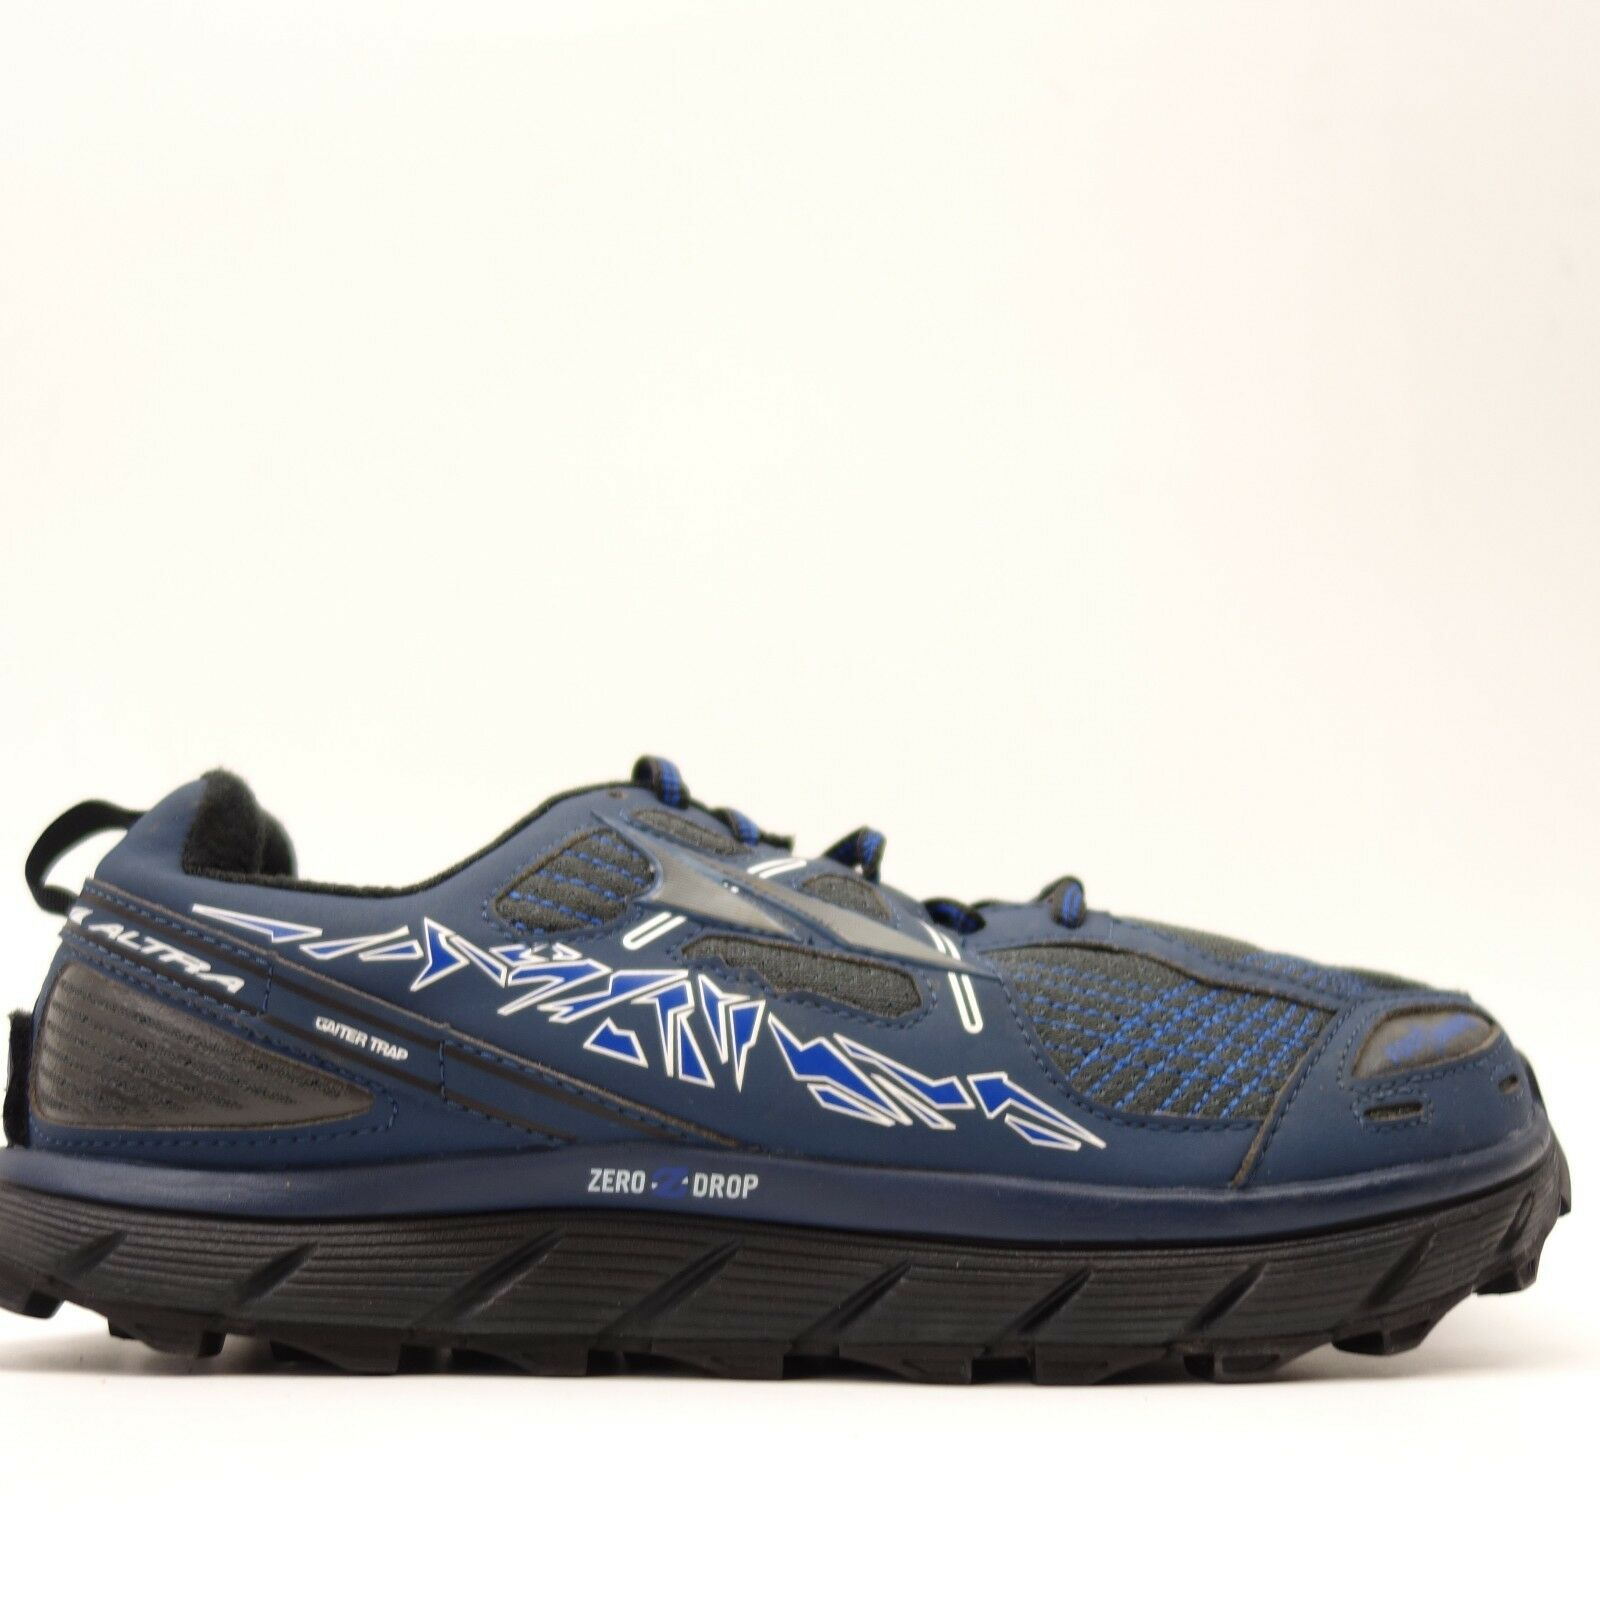 Altra Uomo Lone Peak Mesh 3.5 Blue Mesh Peak Athletic Support Trail-Running Shoes Size 8.5 36ad9e